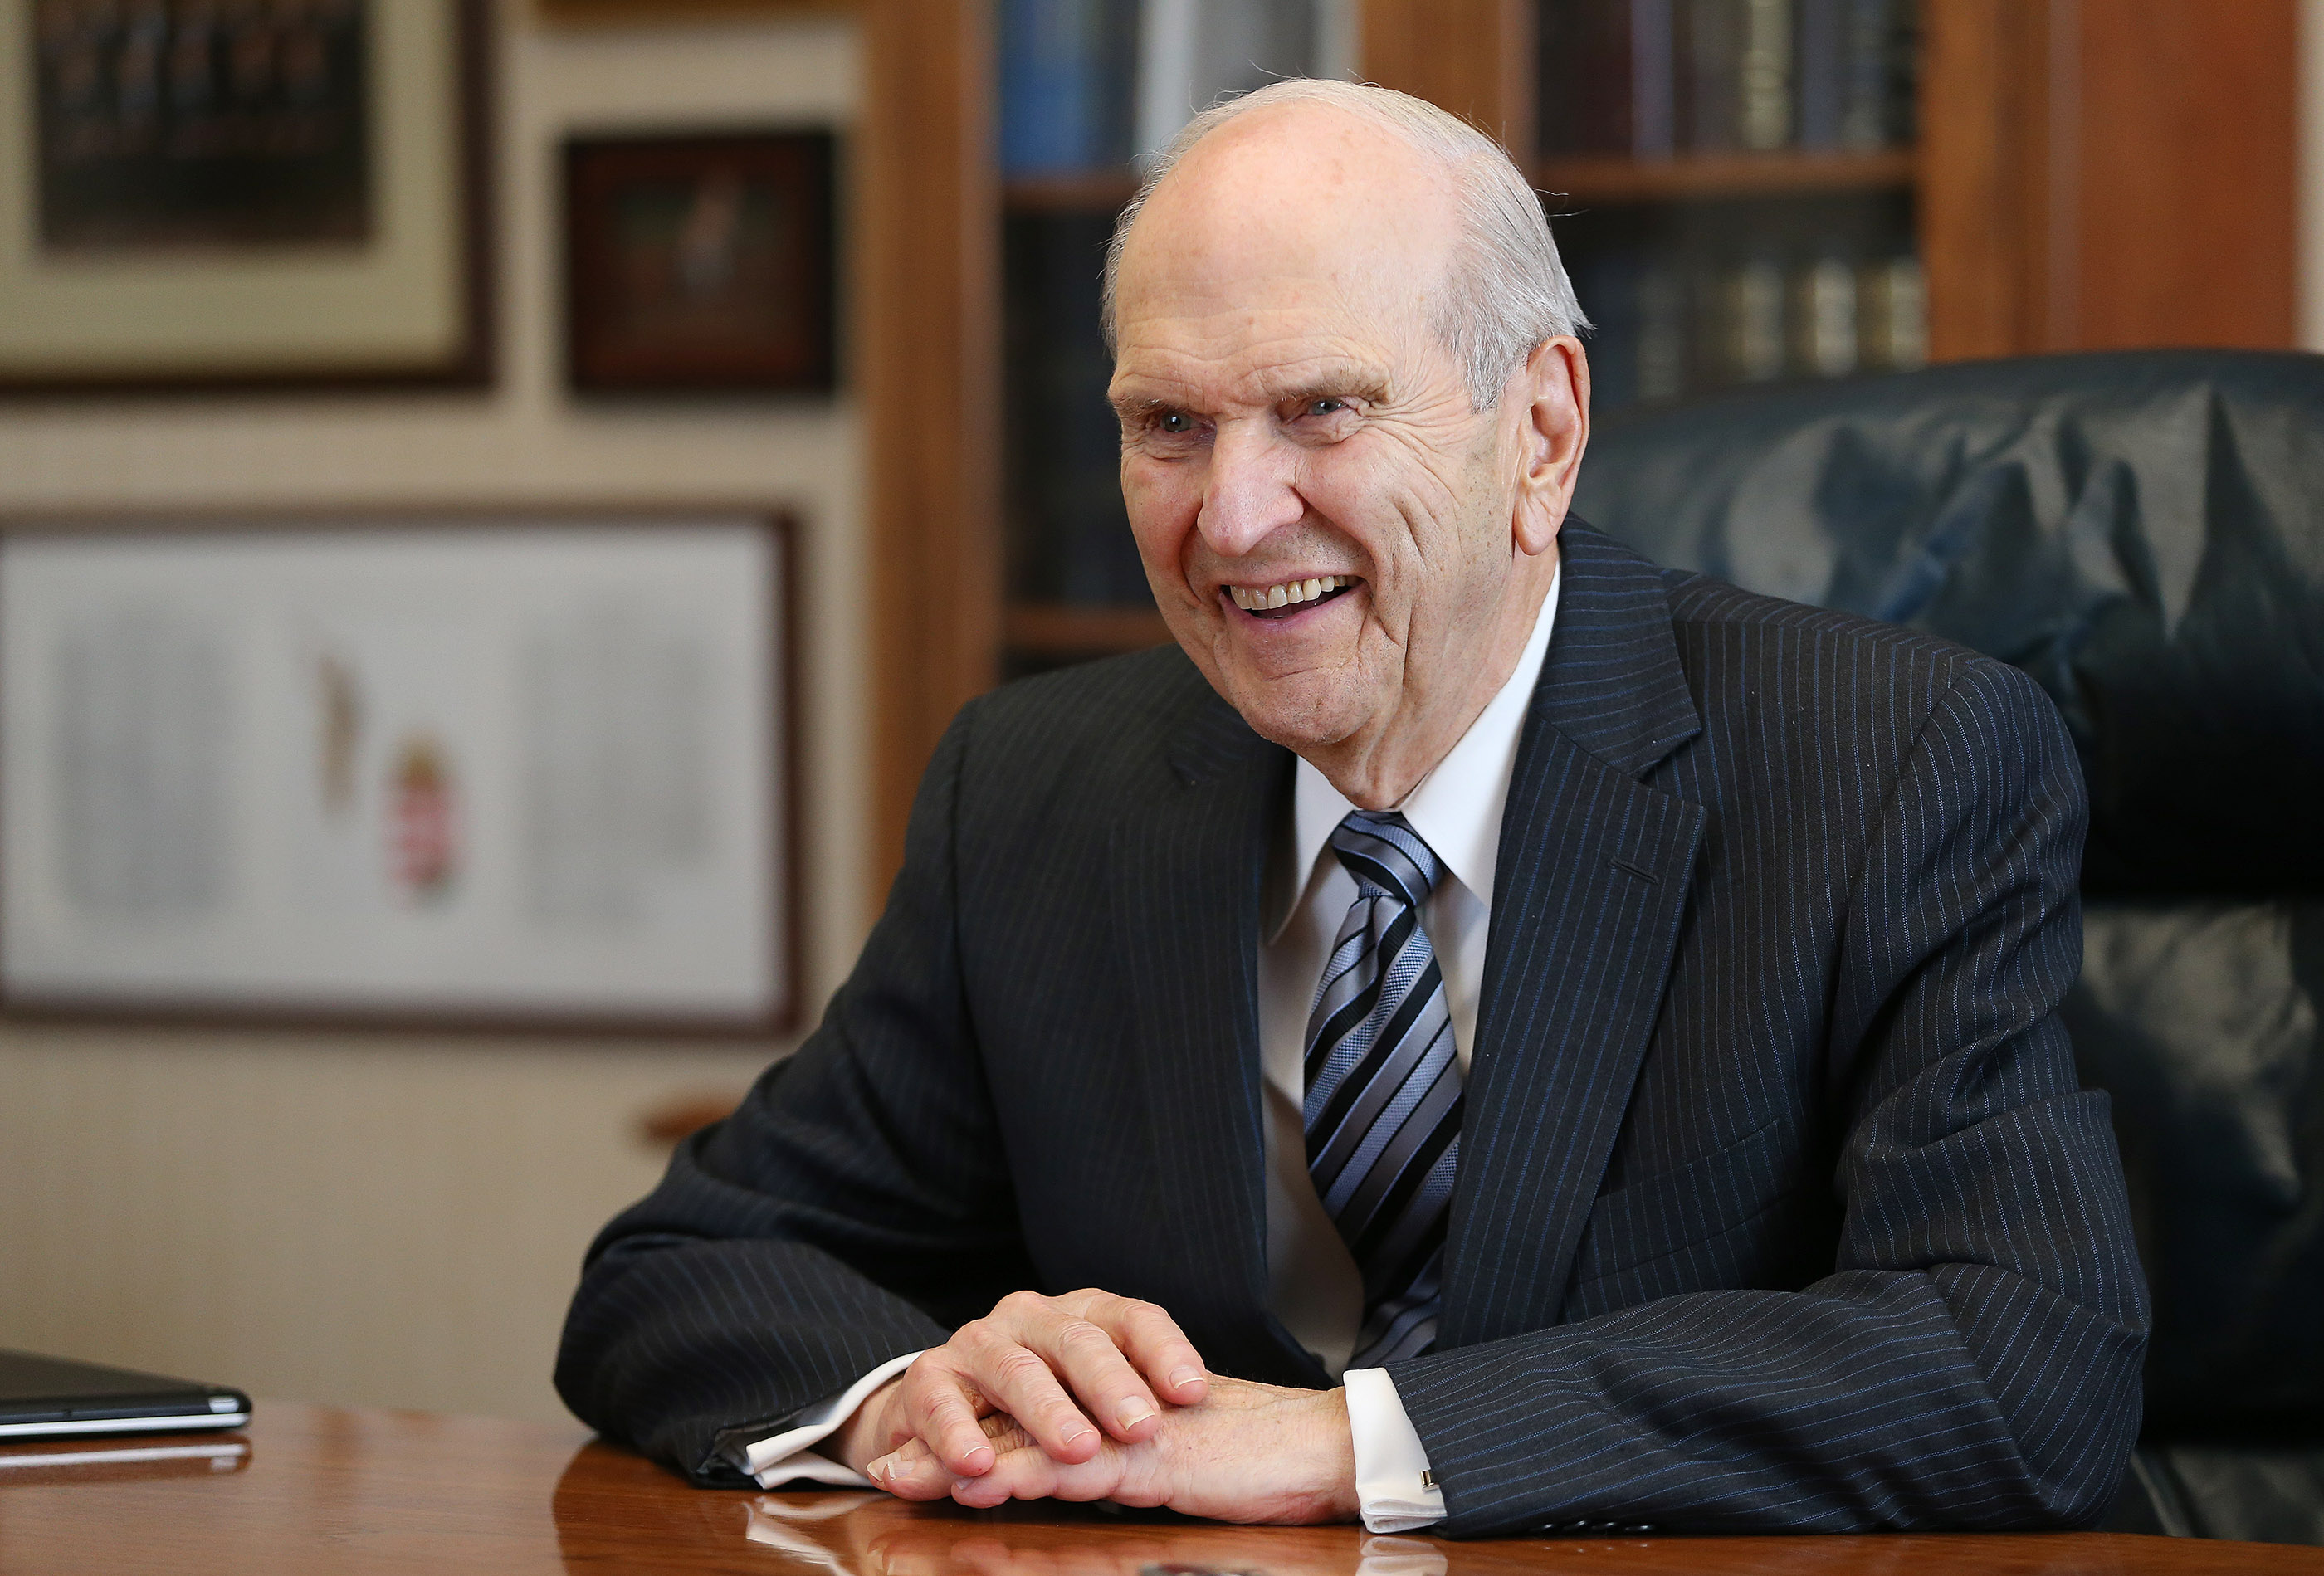 President Russell M. Nelson was set apart as the 17th president of The Church of Jesus Christ of Latter-day Saints on Jan. 14, after serving 34 years in the Quorum of the Twelve Apostles.